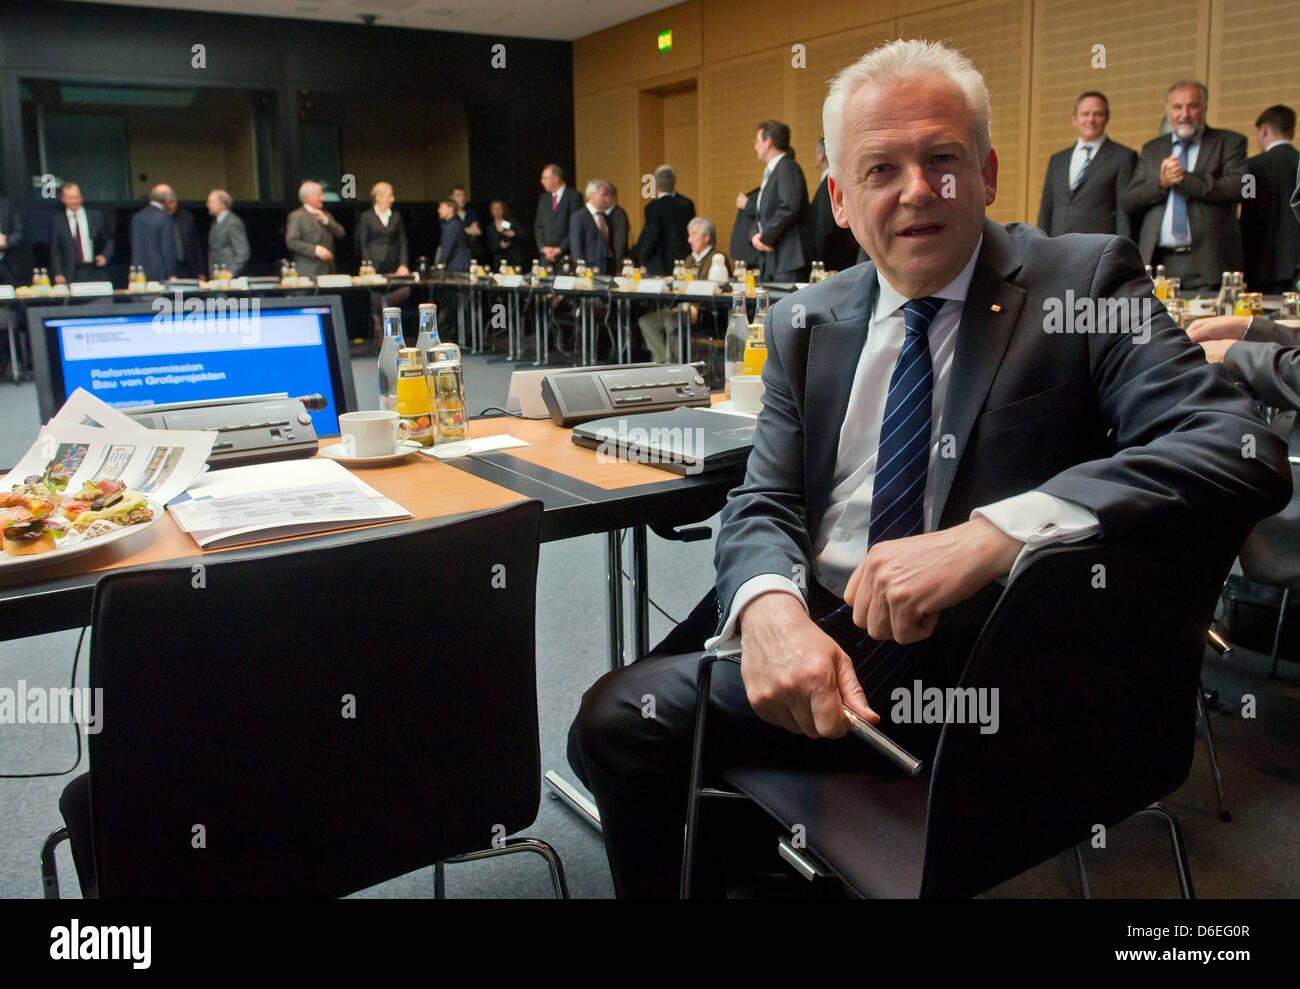 CEO of Deutsche Bahn, Ruediger Grube, attends a meeting at the German Ministry of Transport in Berlin, Germany, - Stock Image